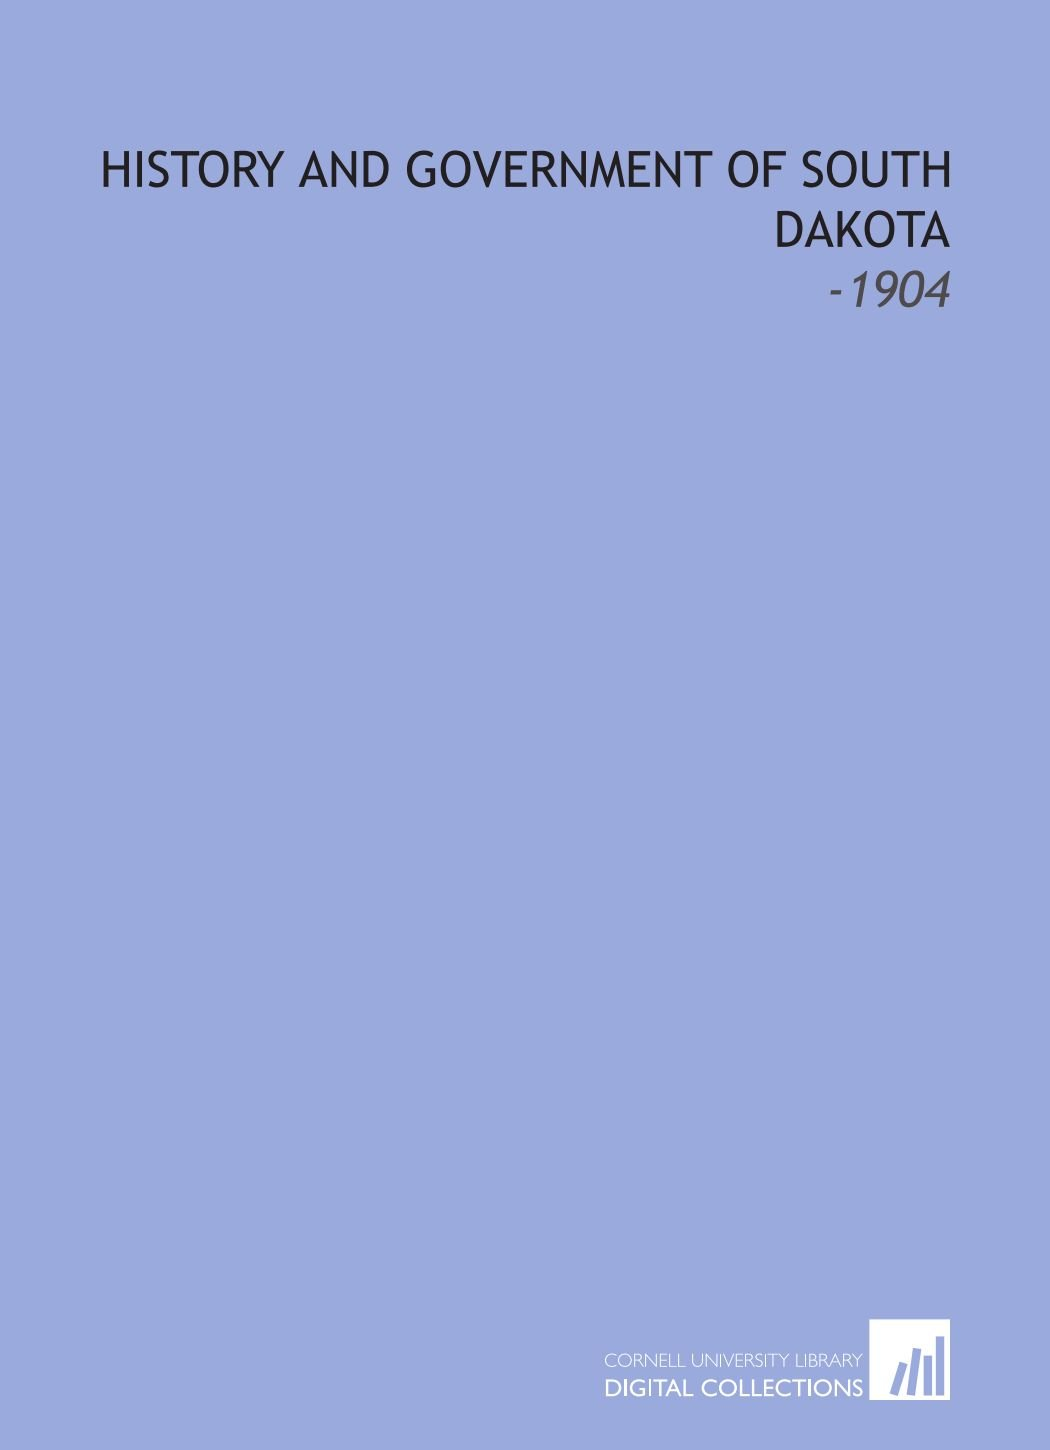 Download History and Government of South Dakota: -1904 ebook